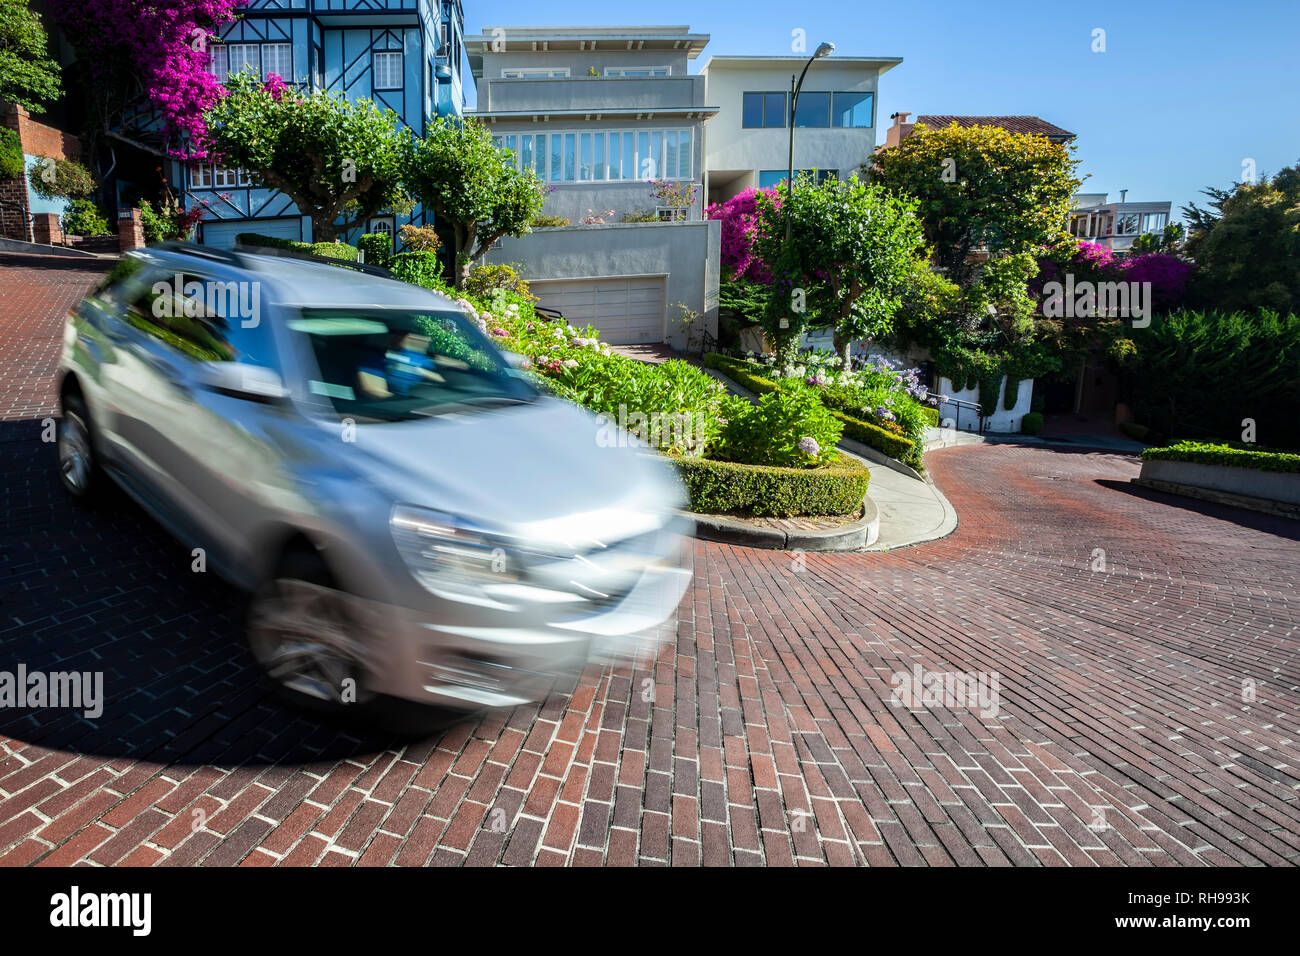 Car on Lombard Street ('Crookedest Street'), San Francisco, California USA - Stock Image